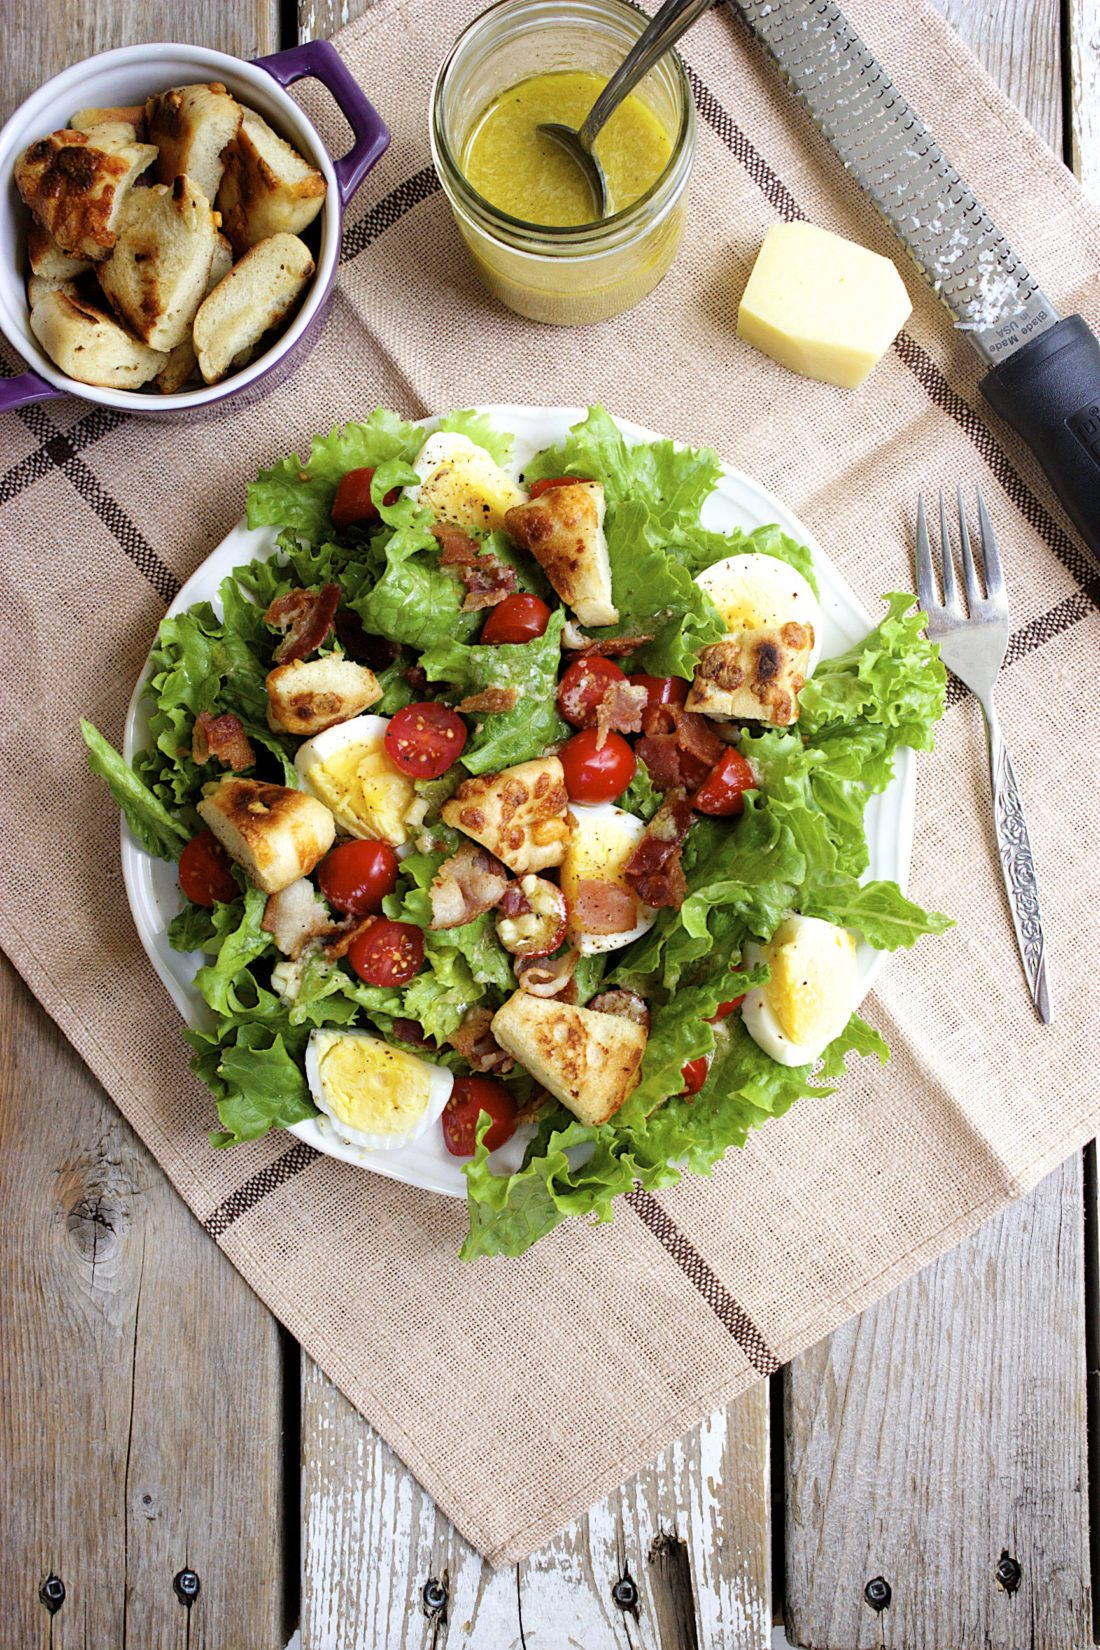 B.E.L.T. Salad with Quick Bagel Croutons and Parmesan Vinaigrette